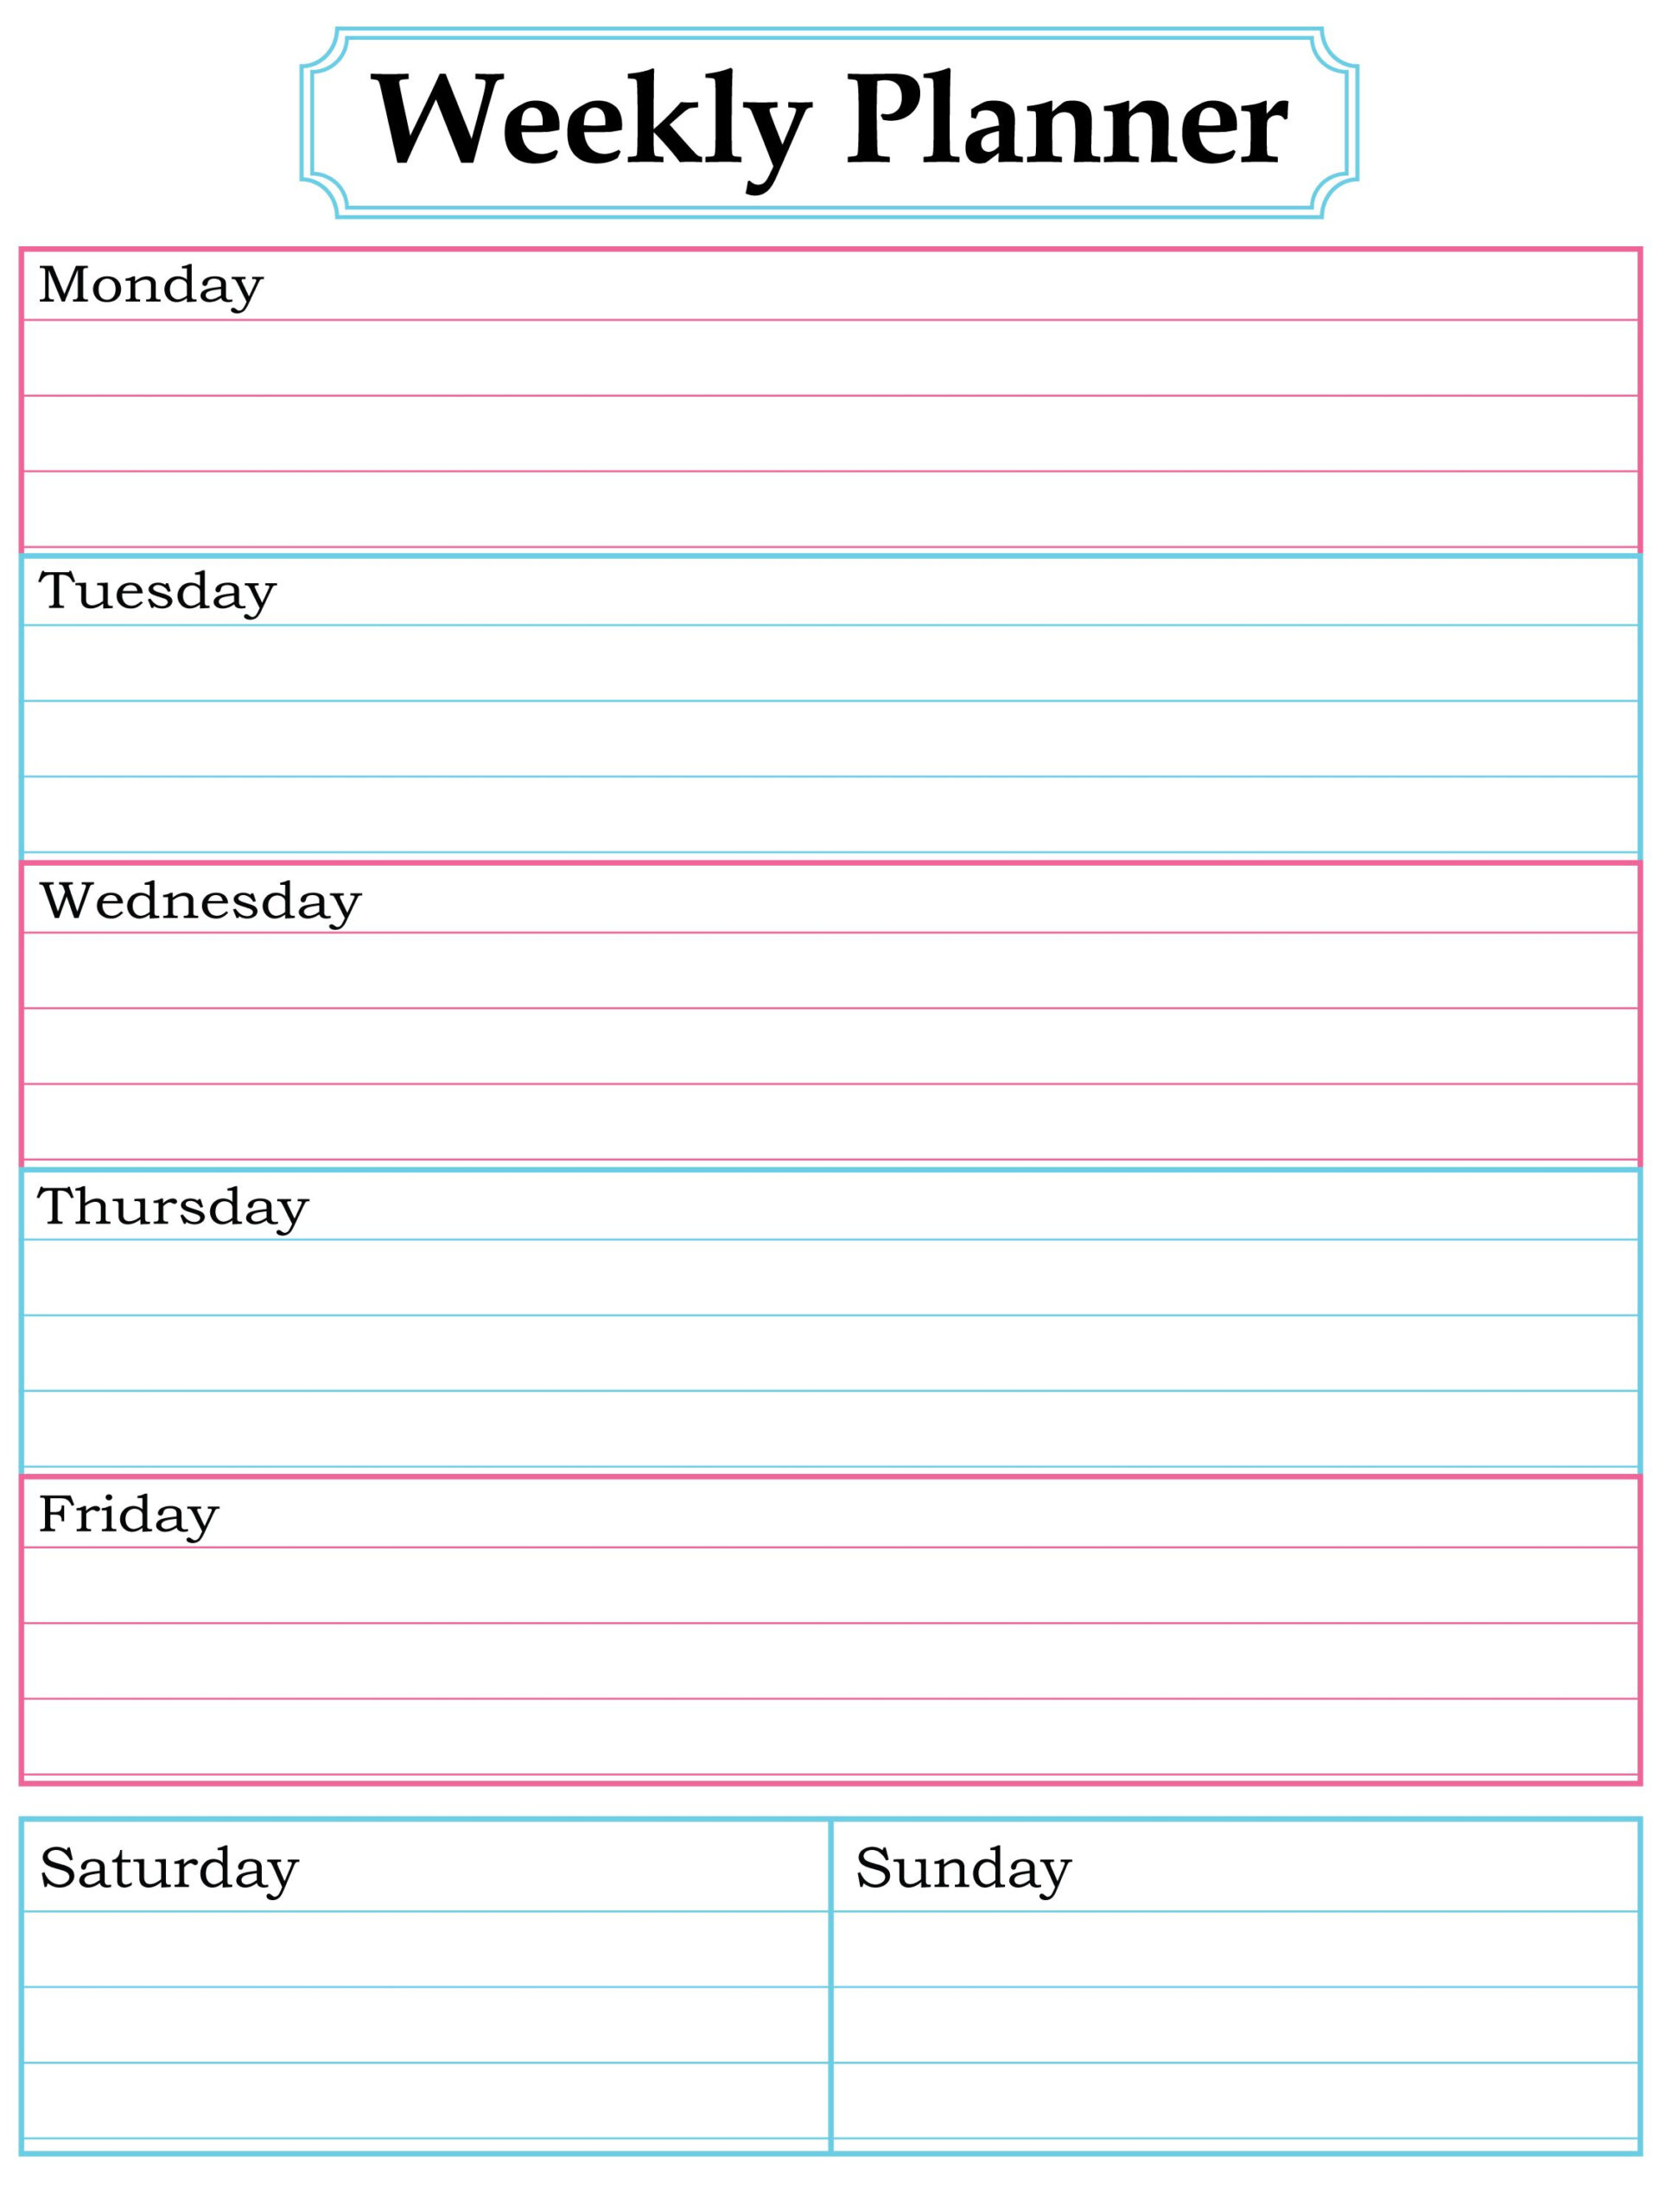 Free Weekly Planner   Weekly Planner Free, Free Printable with 7 Day Planner Template